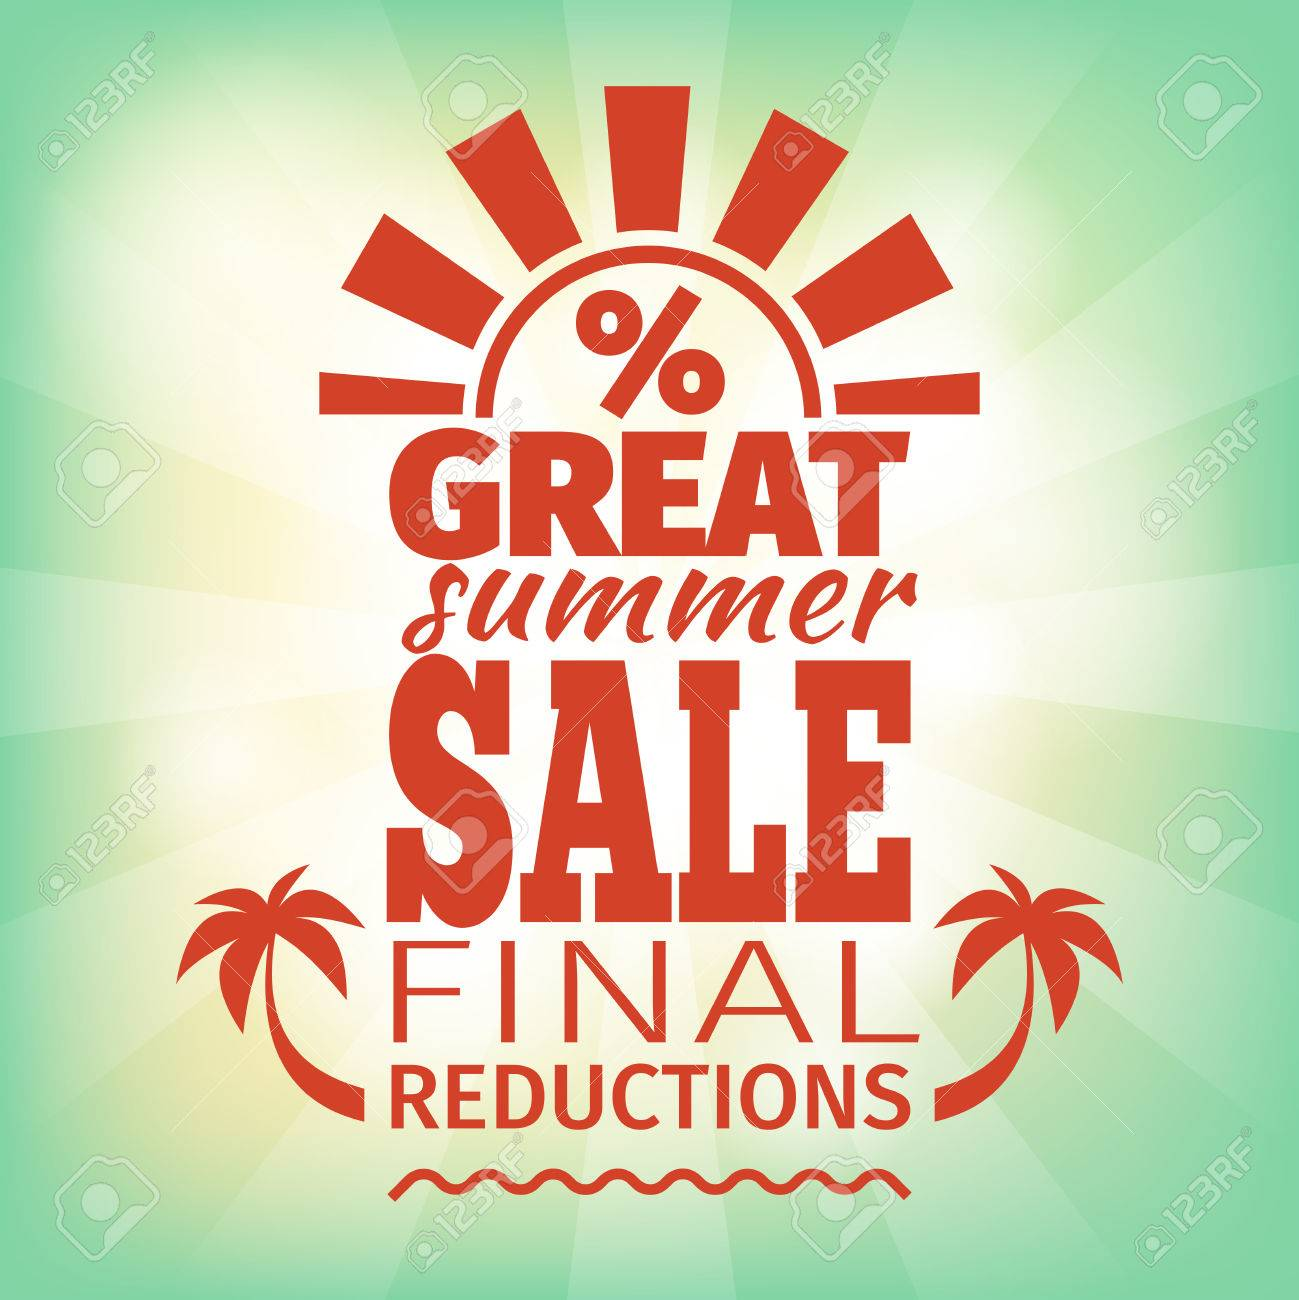 summer poster template vintage advertisement for the final summer poster template vintage advertisement for the final selling stock vector 42362351